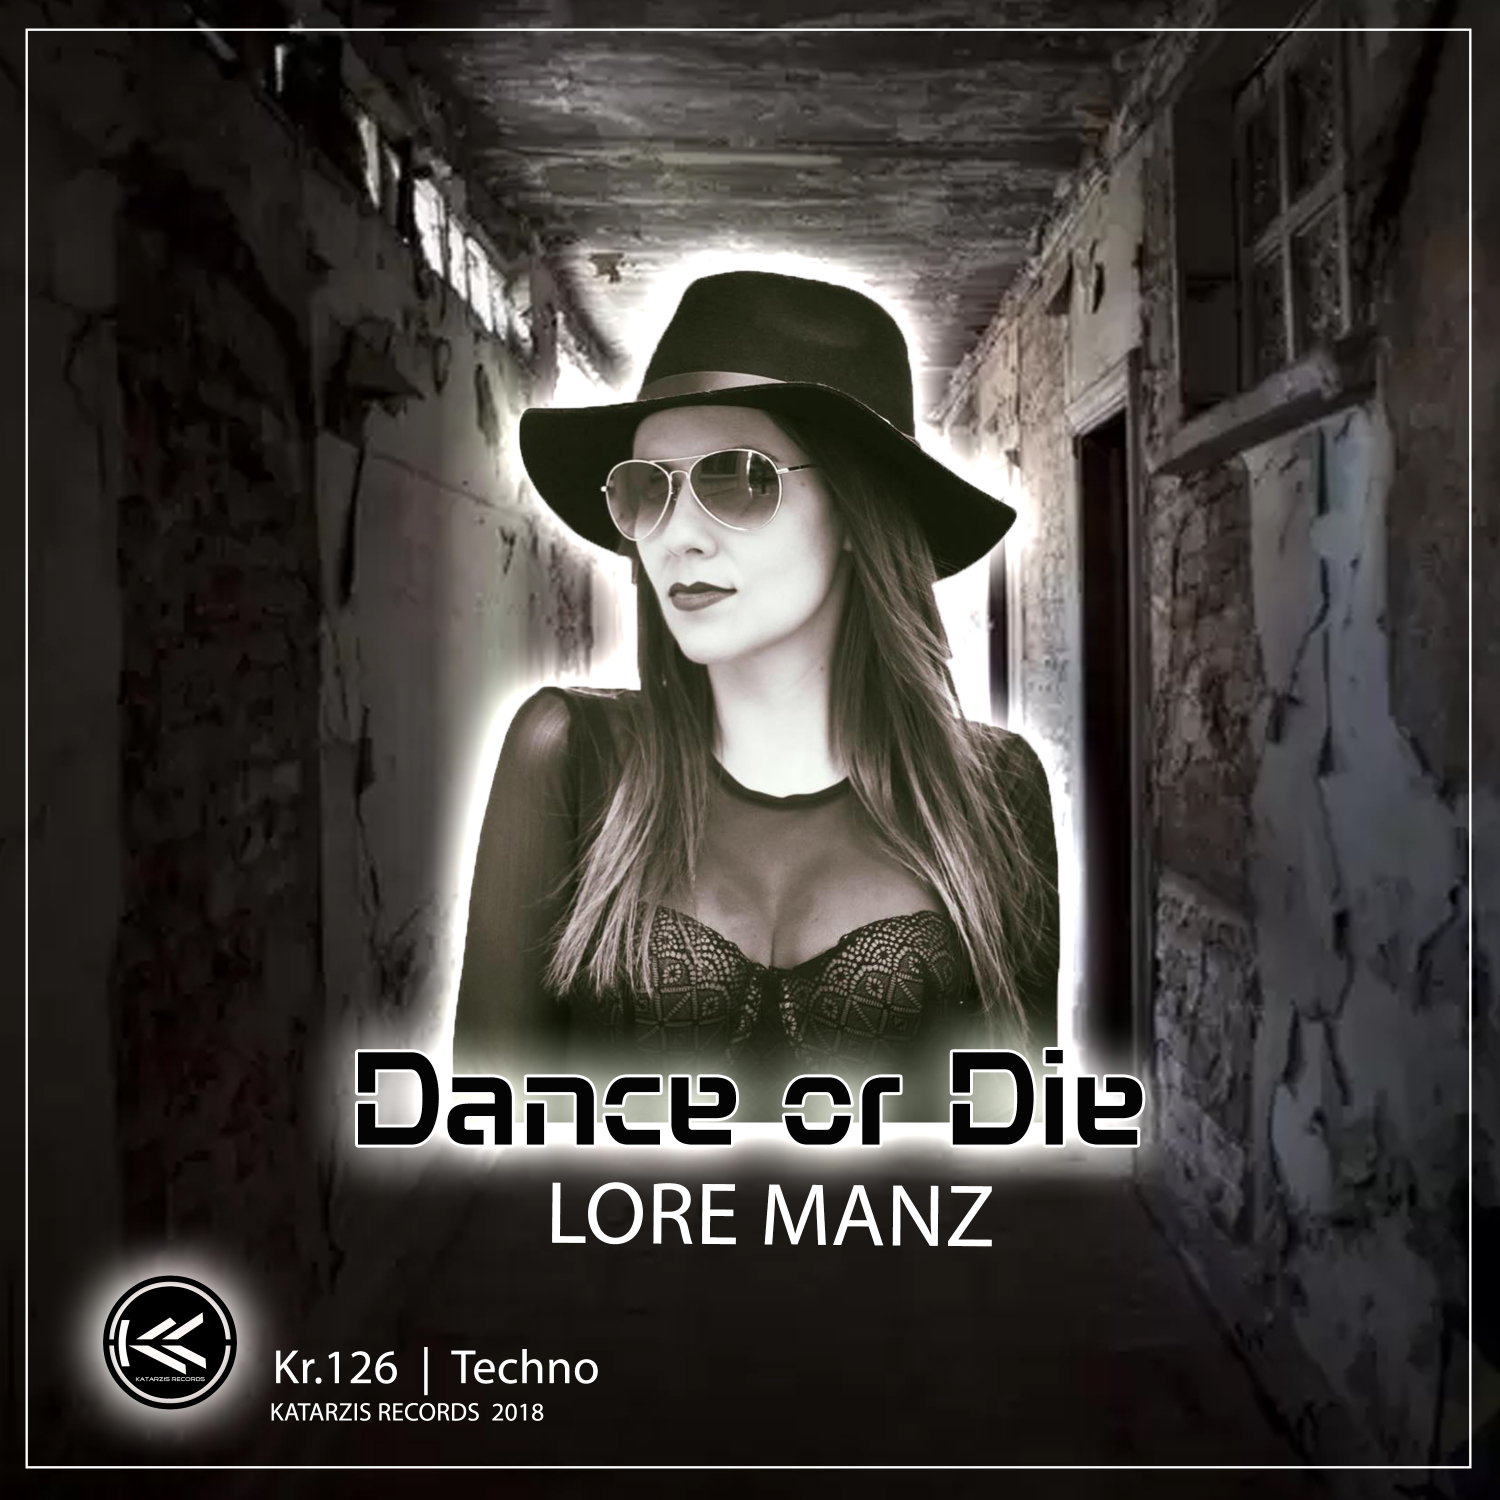 Lore Manz - Dance or Die (Original Mix)